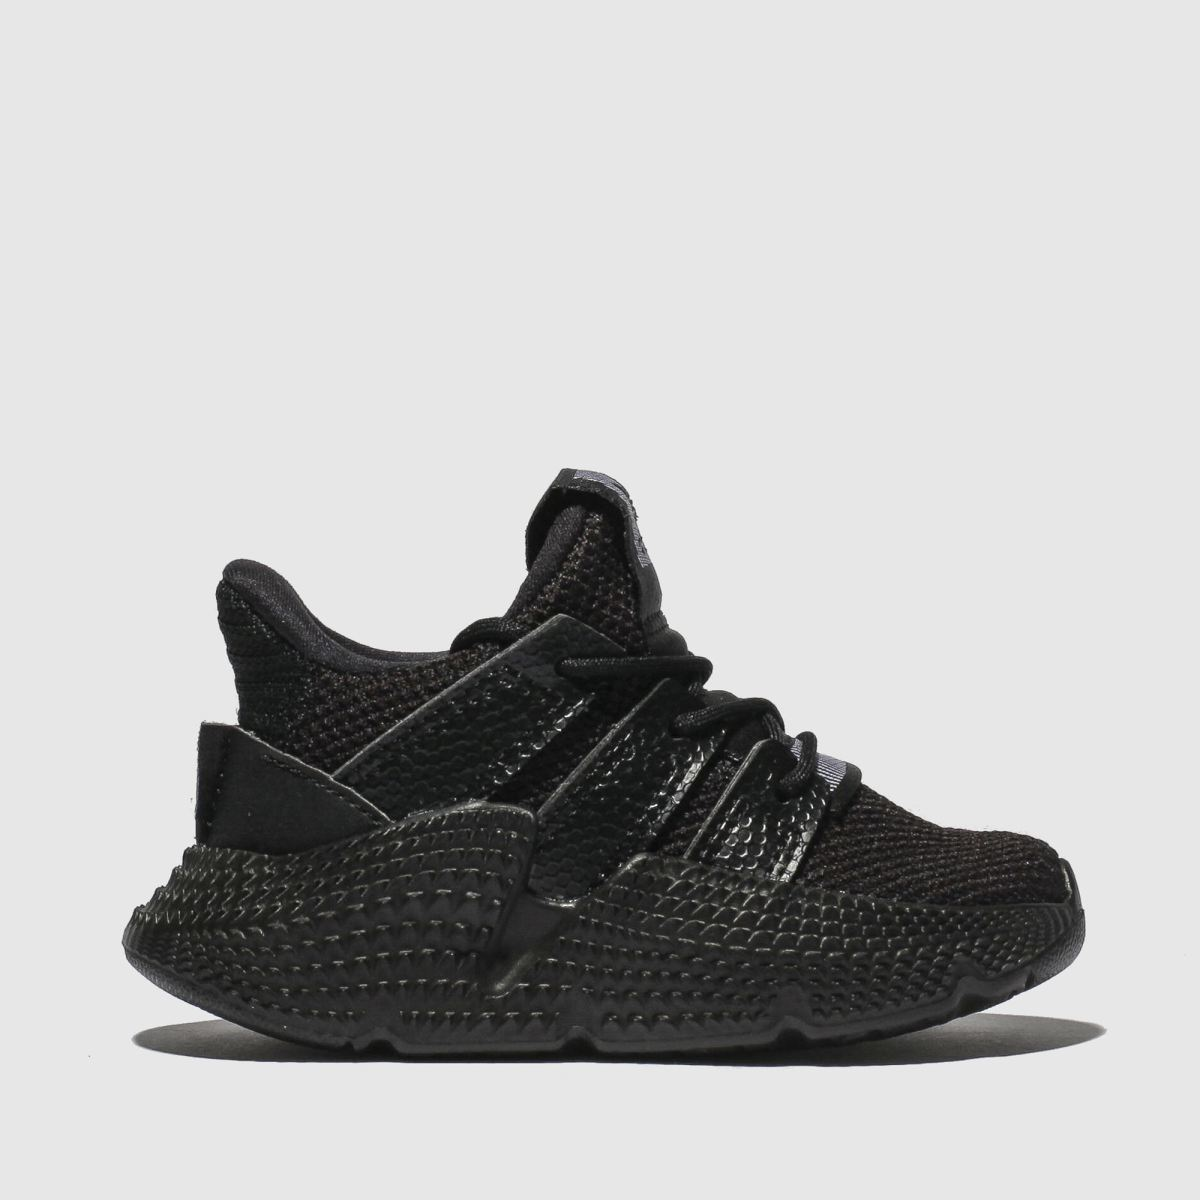 Adidas Black & White Prophere Trainers Toddler